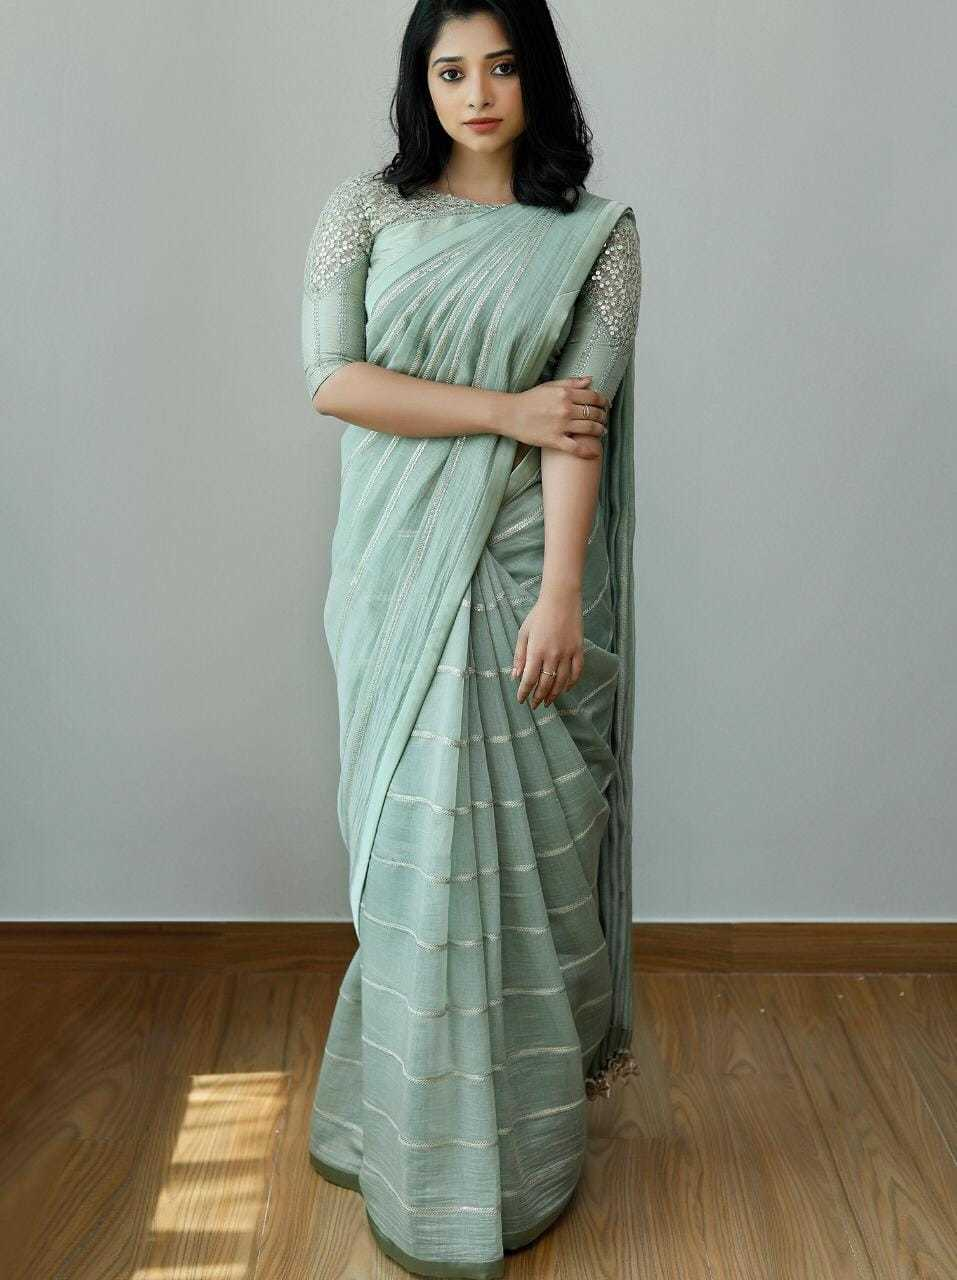 LINEING SAREE COLLECTION